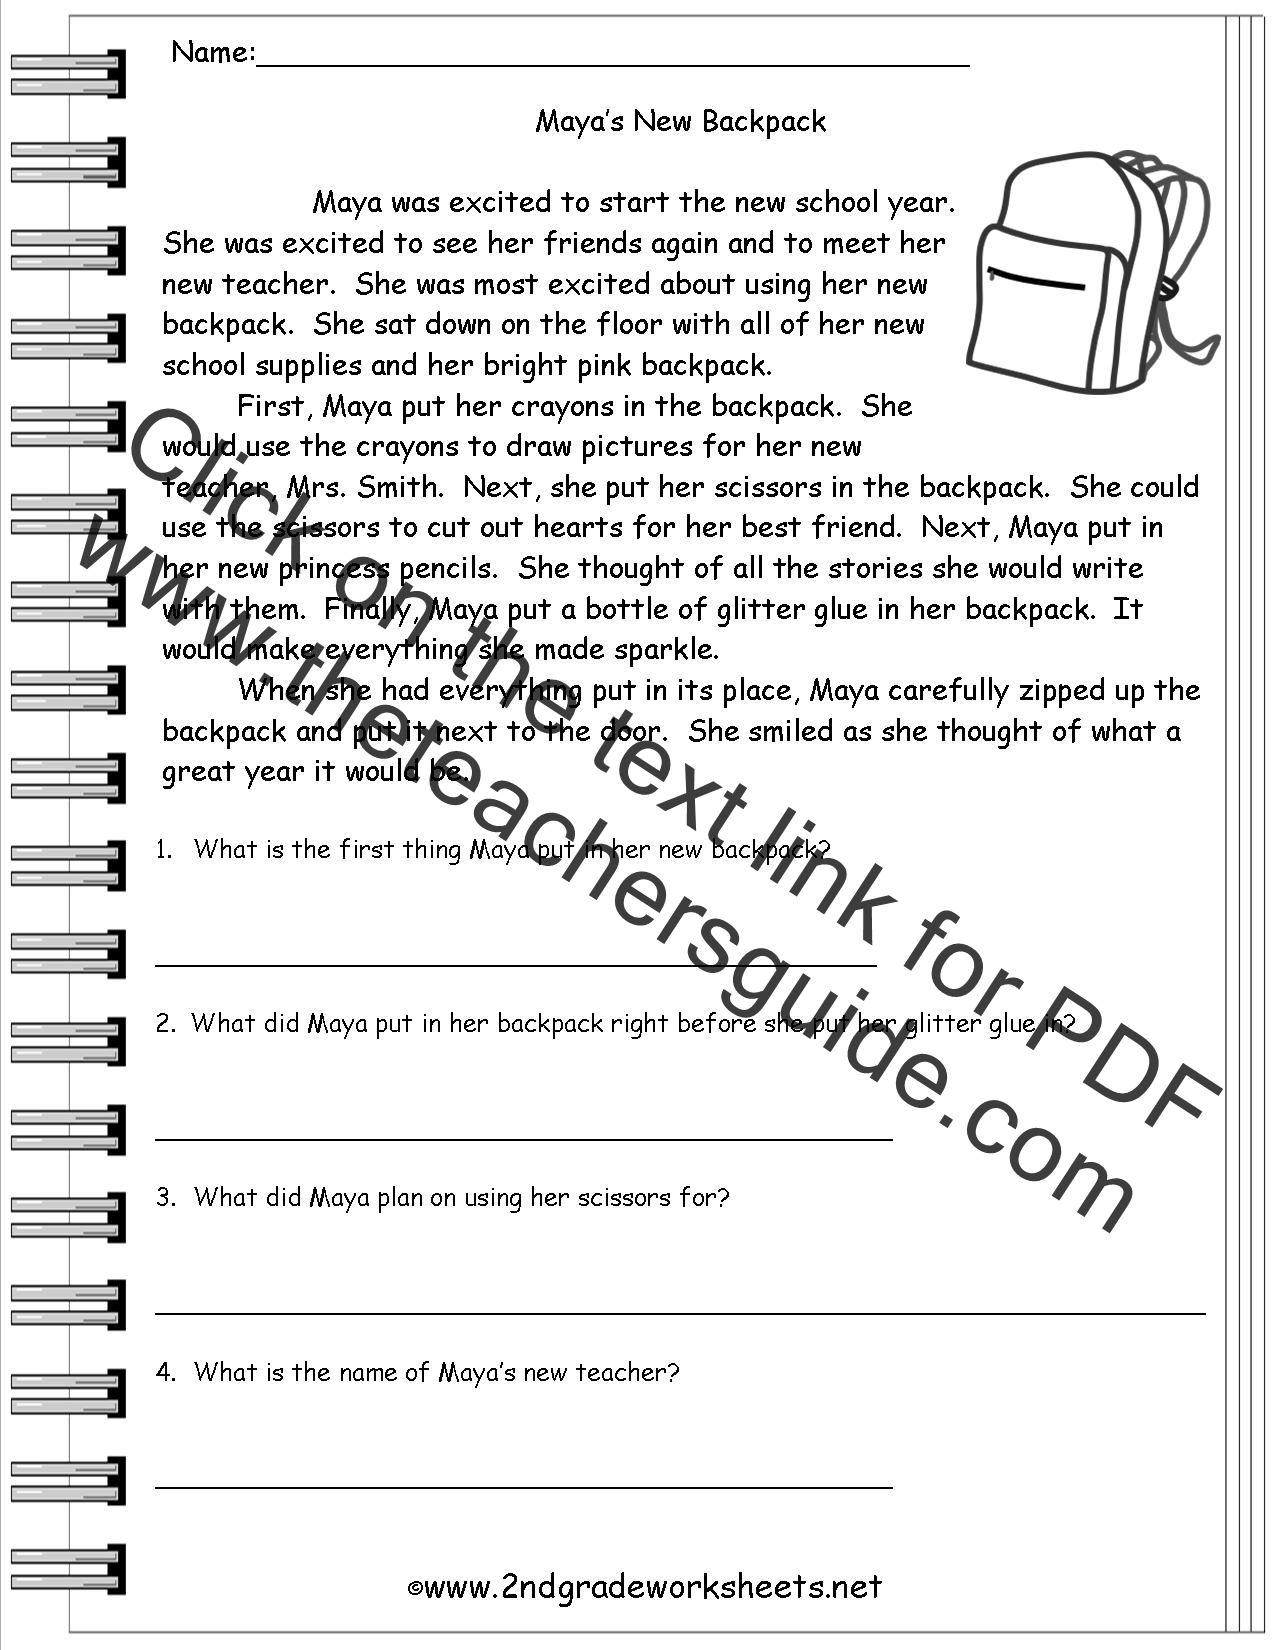 Worksheet Grade 1 Stories For Reading Comprehension reading worksheeets literature worksheets